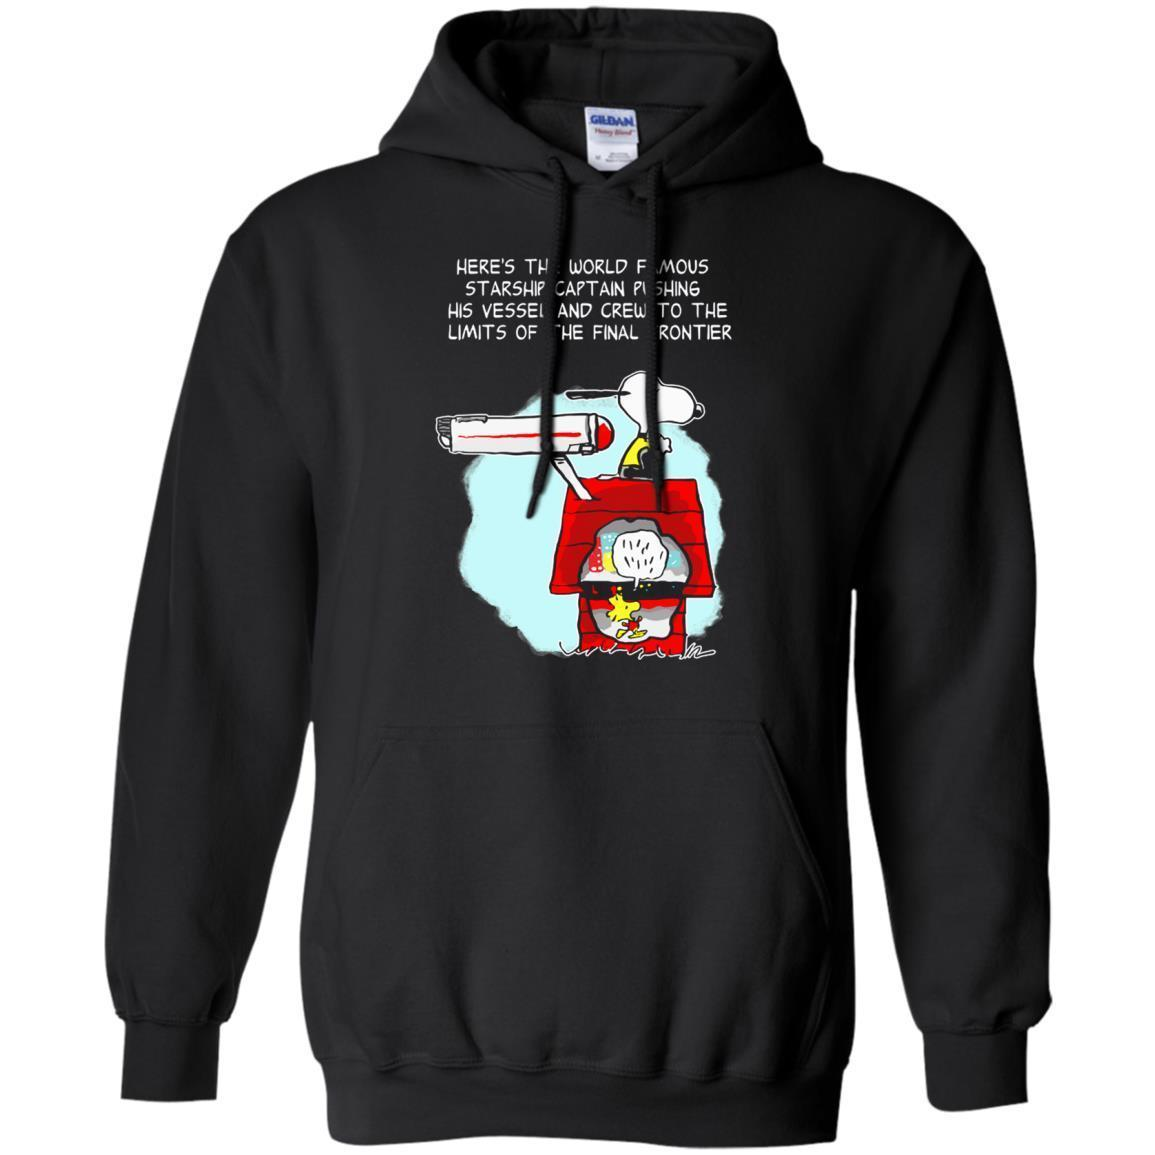 Check Out This Awesome Star Trek Snoopy And Woodstock S Shirts